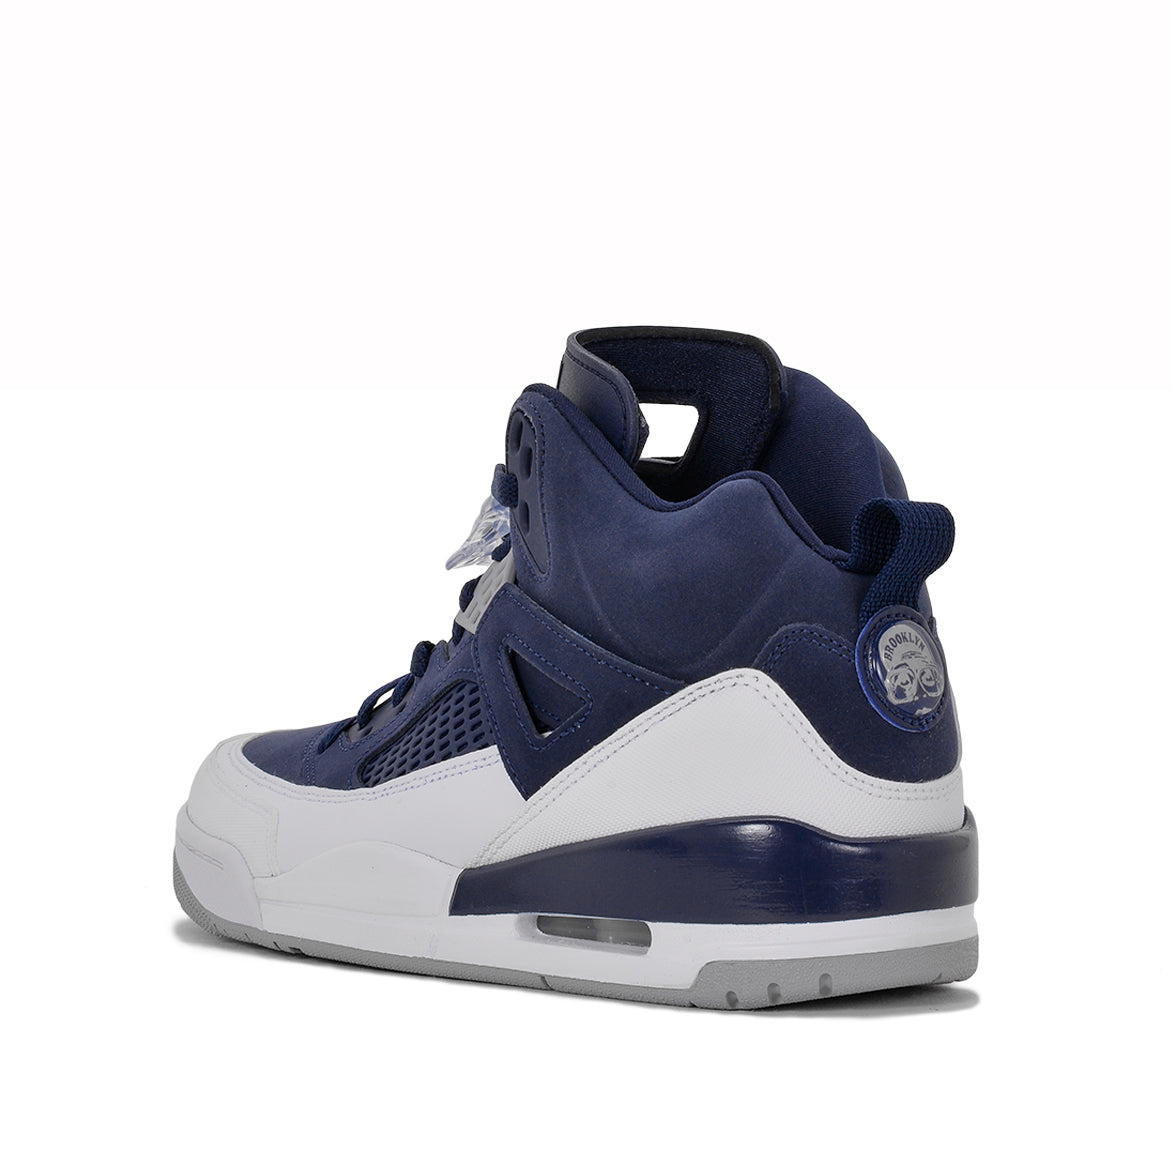 JORDAN SPIZ'IKE - MIDNIGHT NAVY / METALLIC SILVER